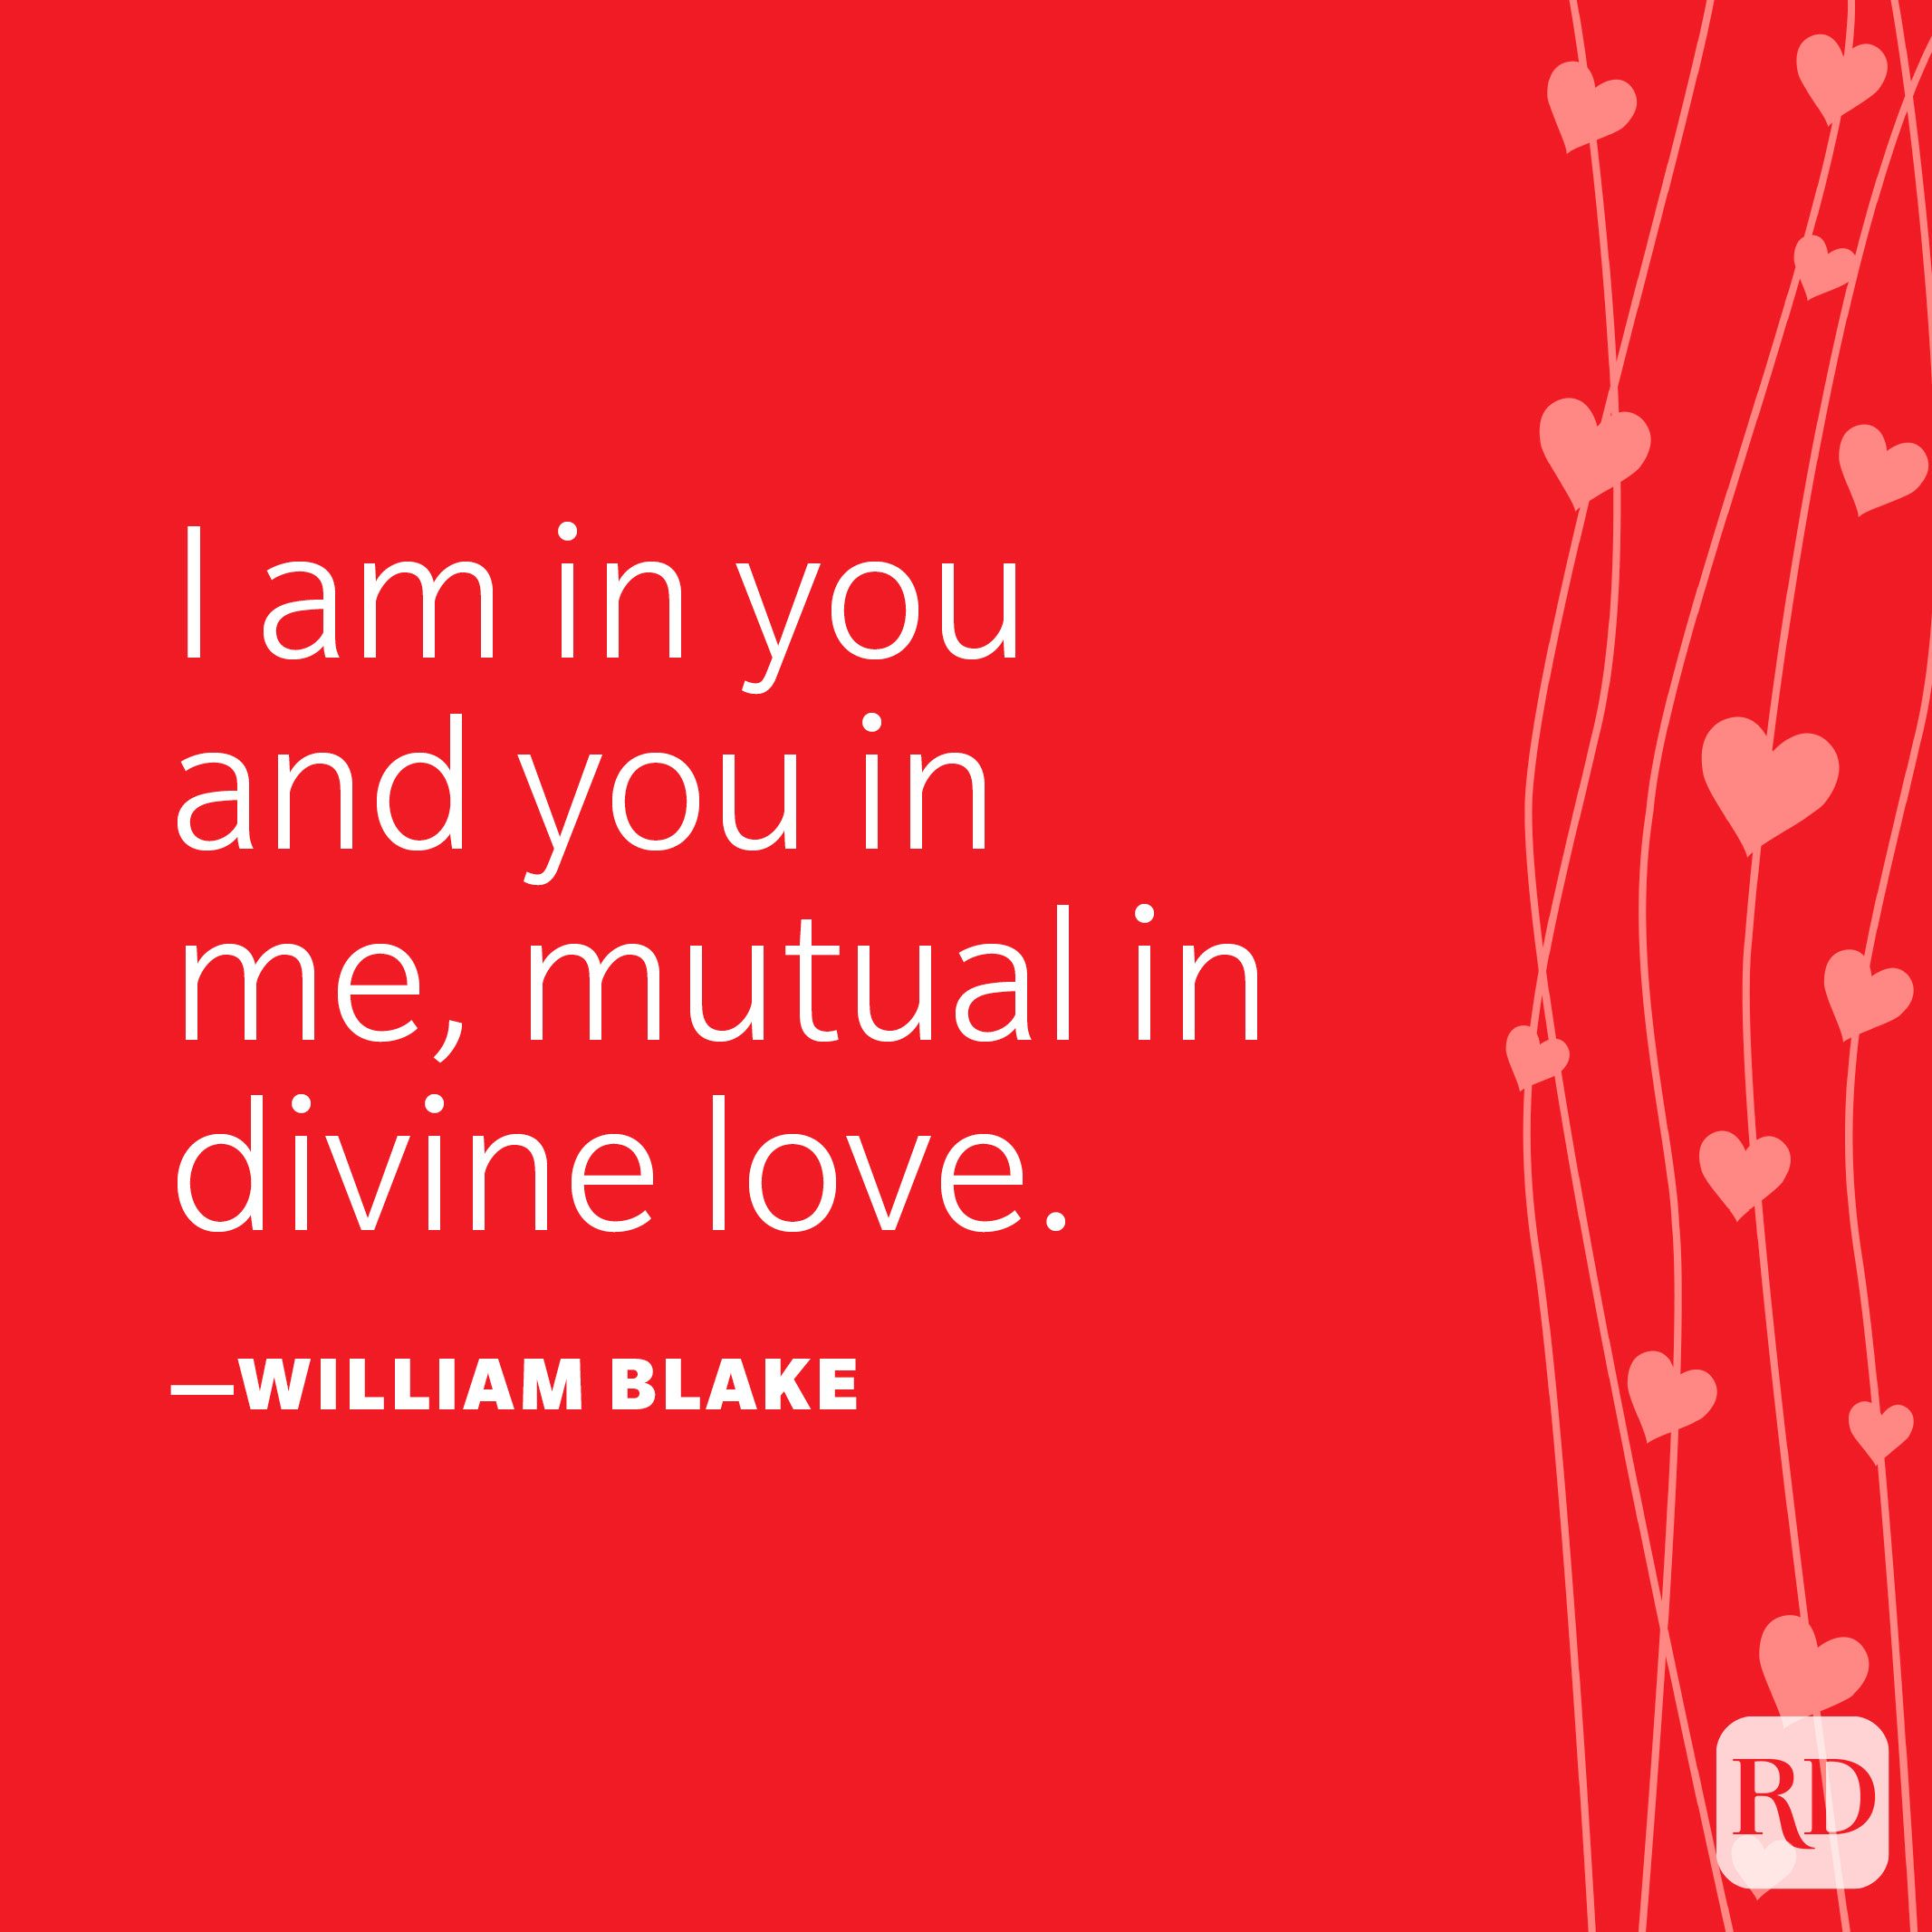 """""""I am in you and you in me, mutual in divine love."""" —William Blake"""